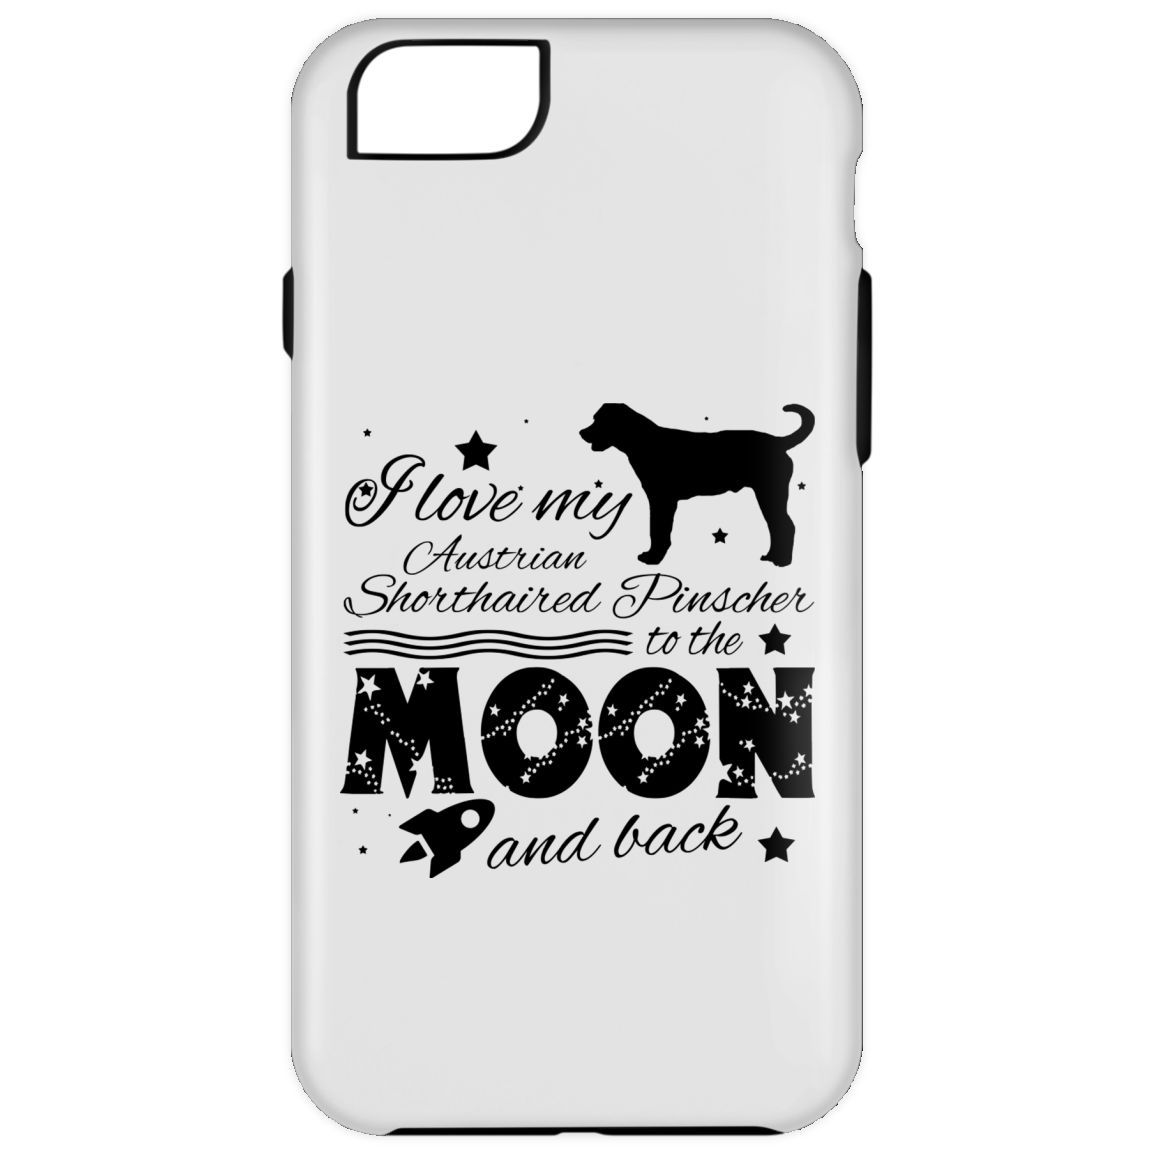 Love My Australian Shorthaired Pinscher To The Moon And Back iPhone 6 Cases